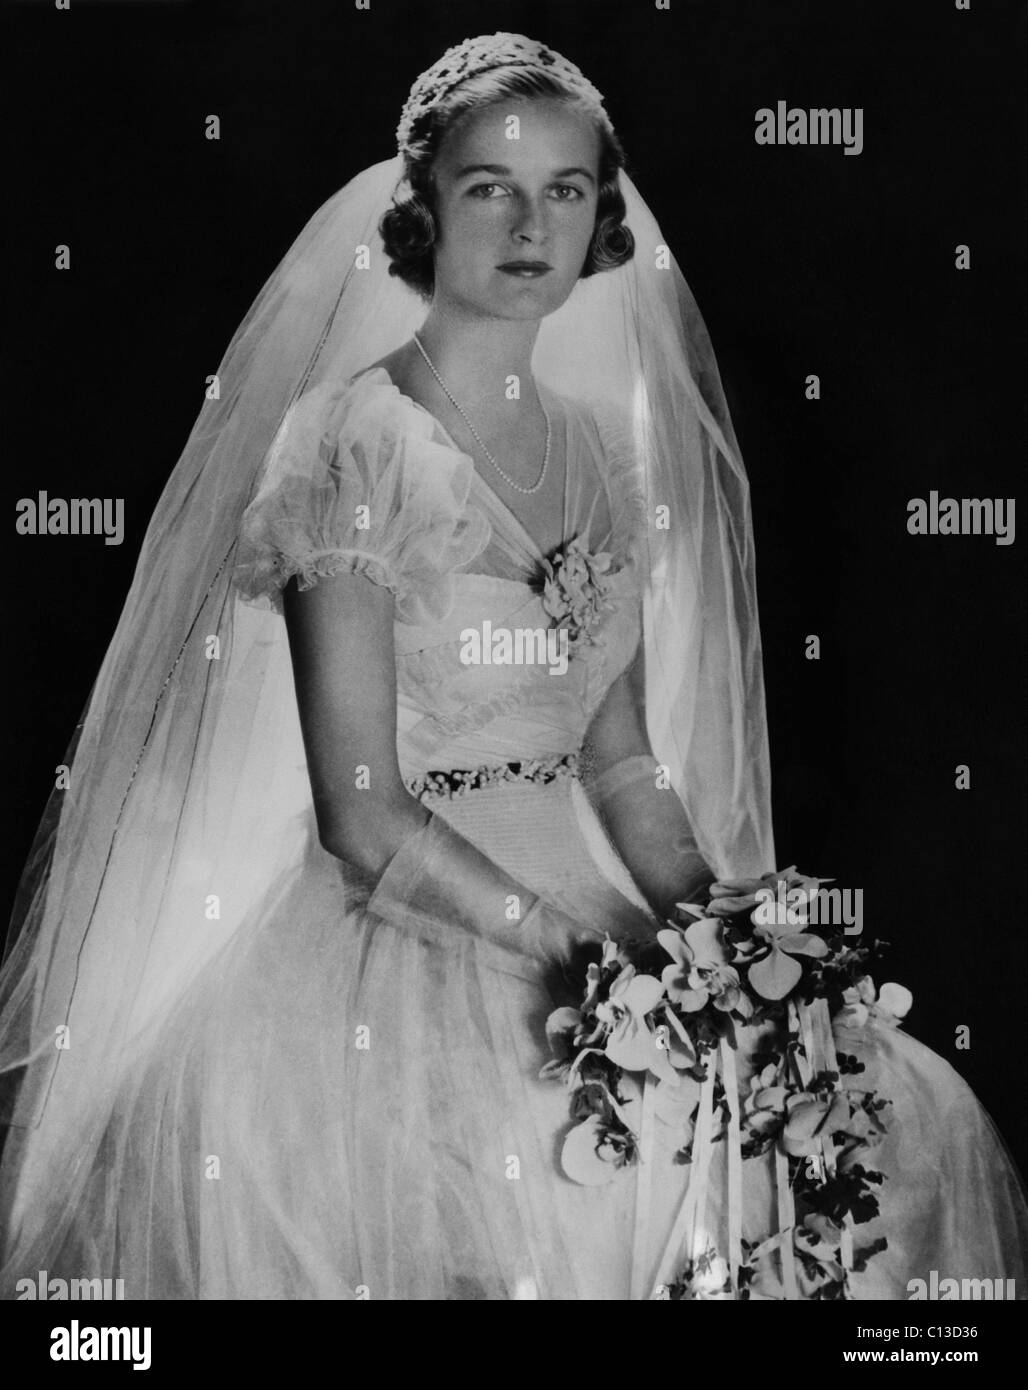 Gown 1930s Stockfotos & Gown 1930s Bilder - Alamy